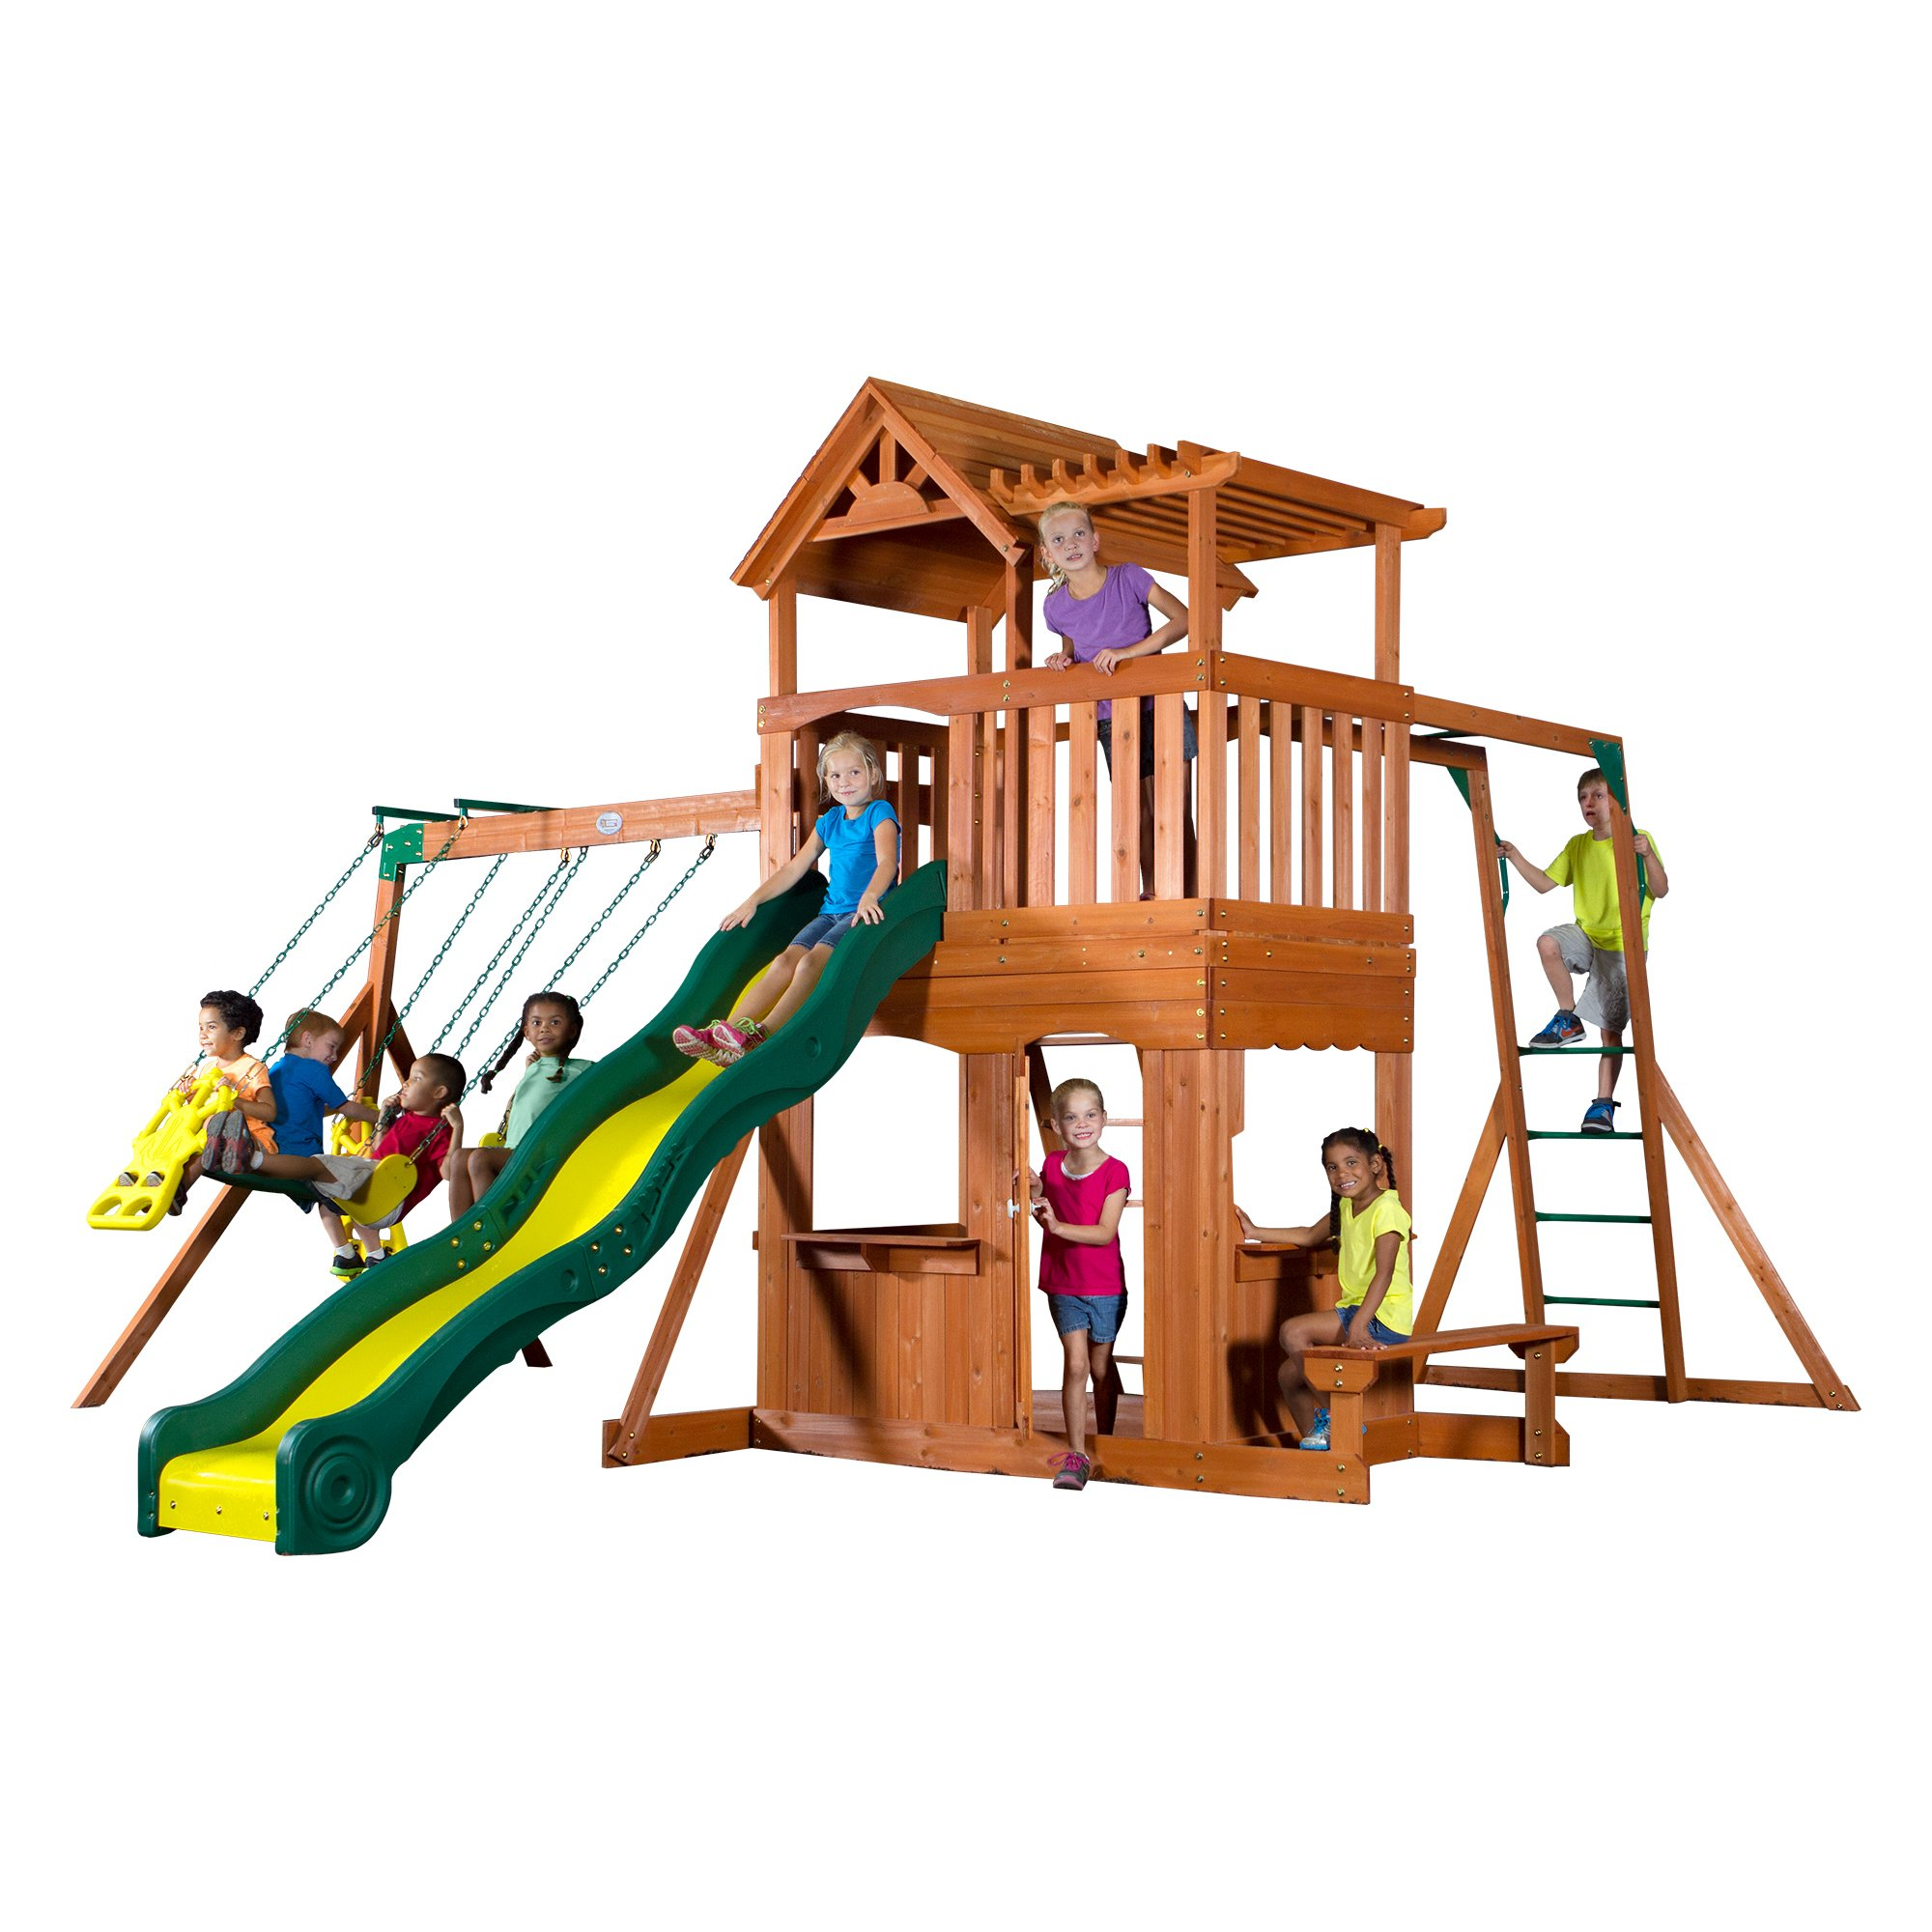 Backyard Discovery Thunder Ridge All Cedar Wood Playset Swing Set by Backyard Discovery (Image #1)